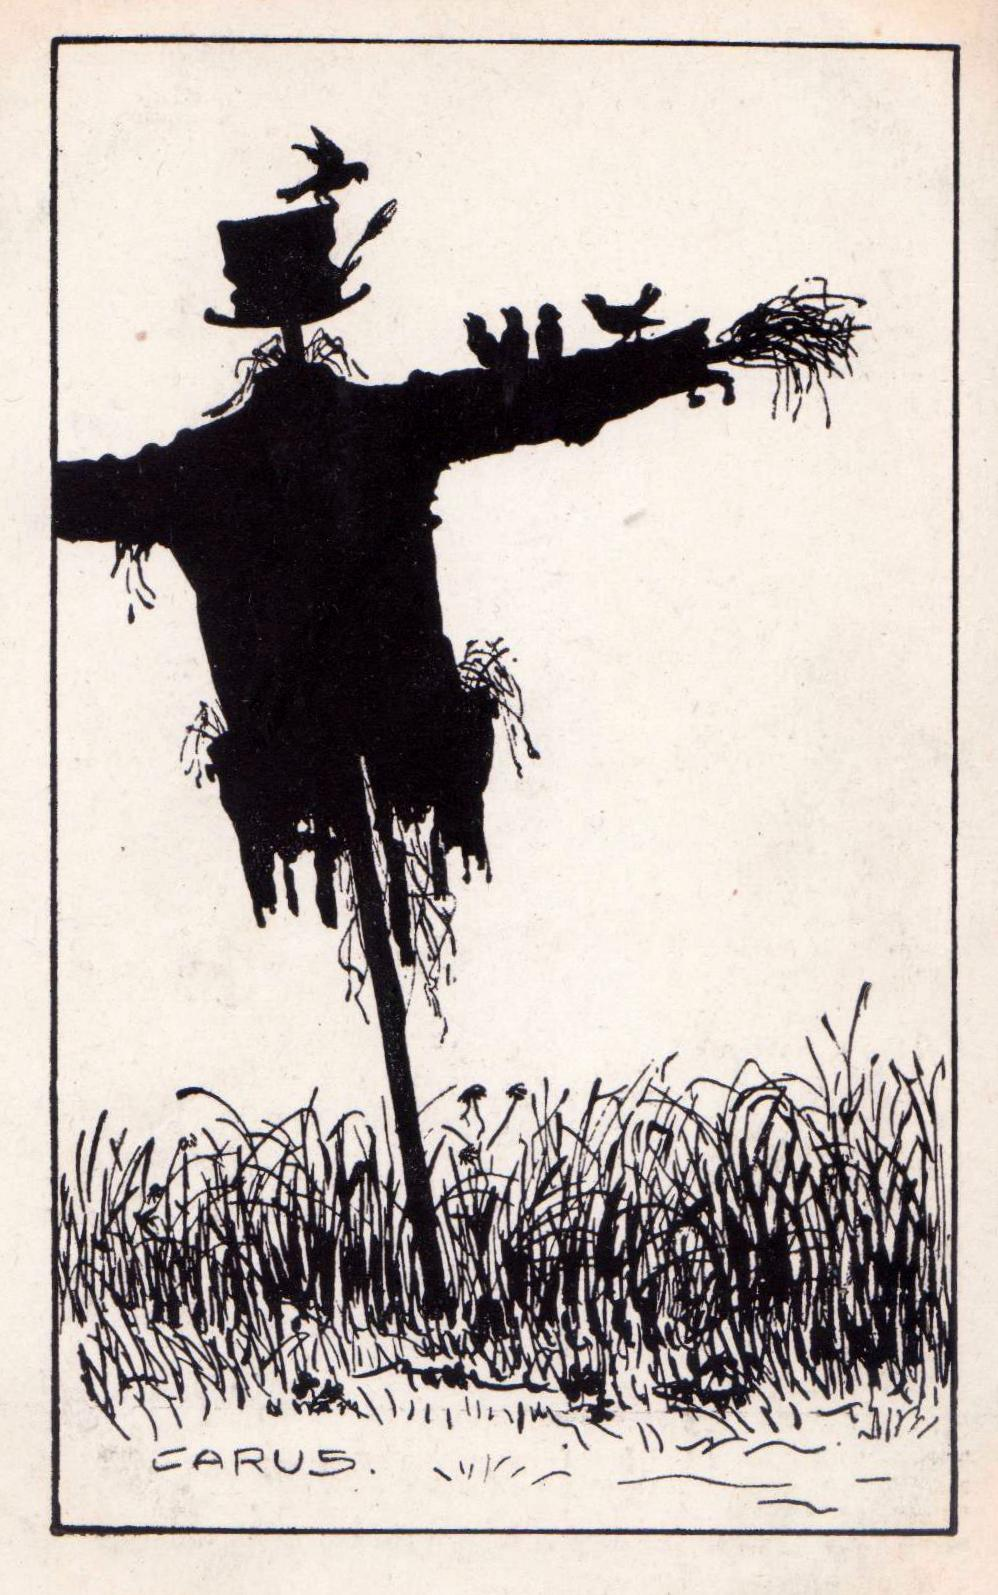 Scarecrow . Drawing by Carus ( silhouette technique ). Postcard from 1910 - 1915. Publisher: Berliner Tierschutz - Berein. Berlin SW. Public Domain